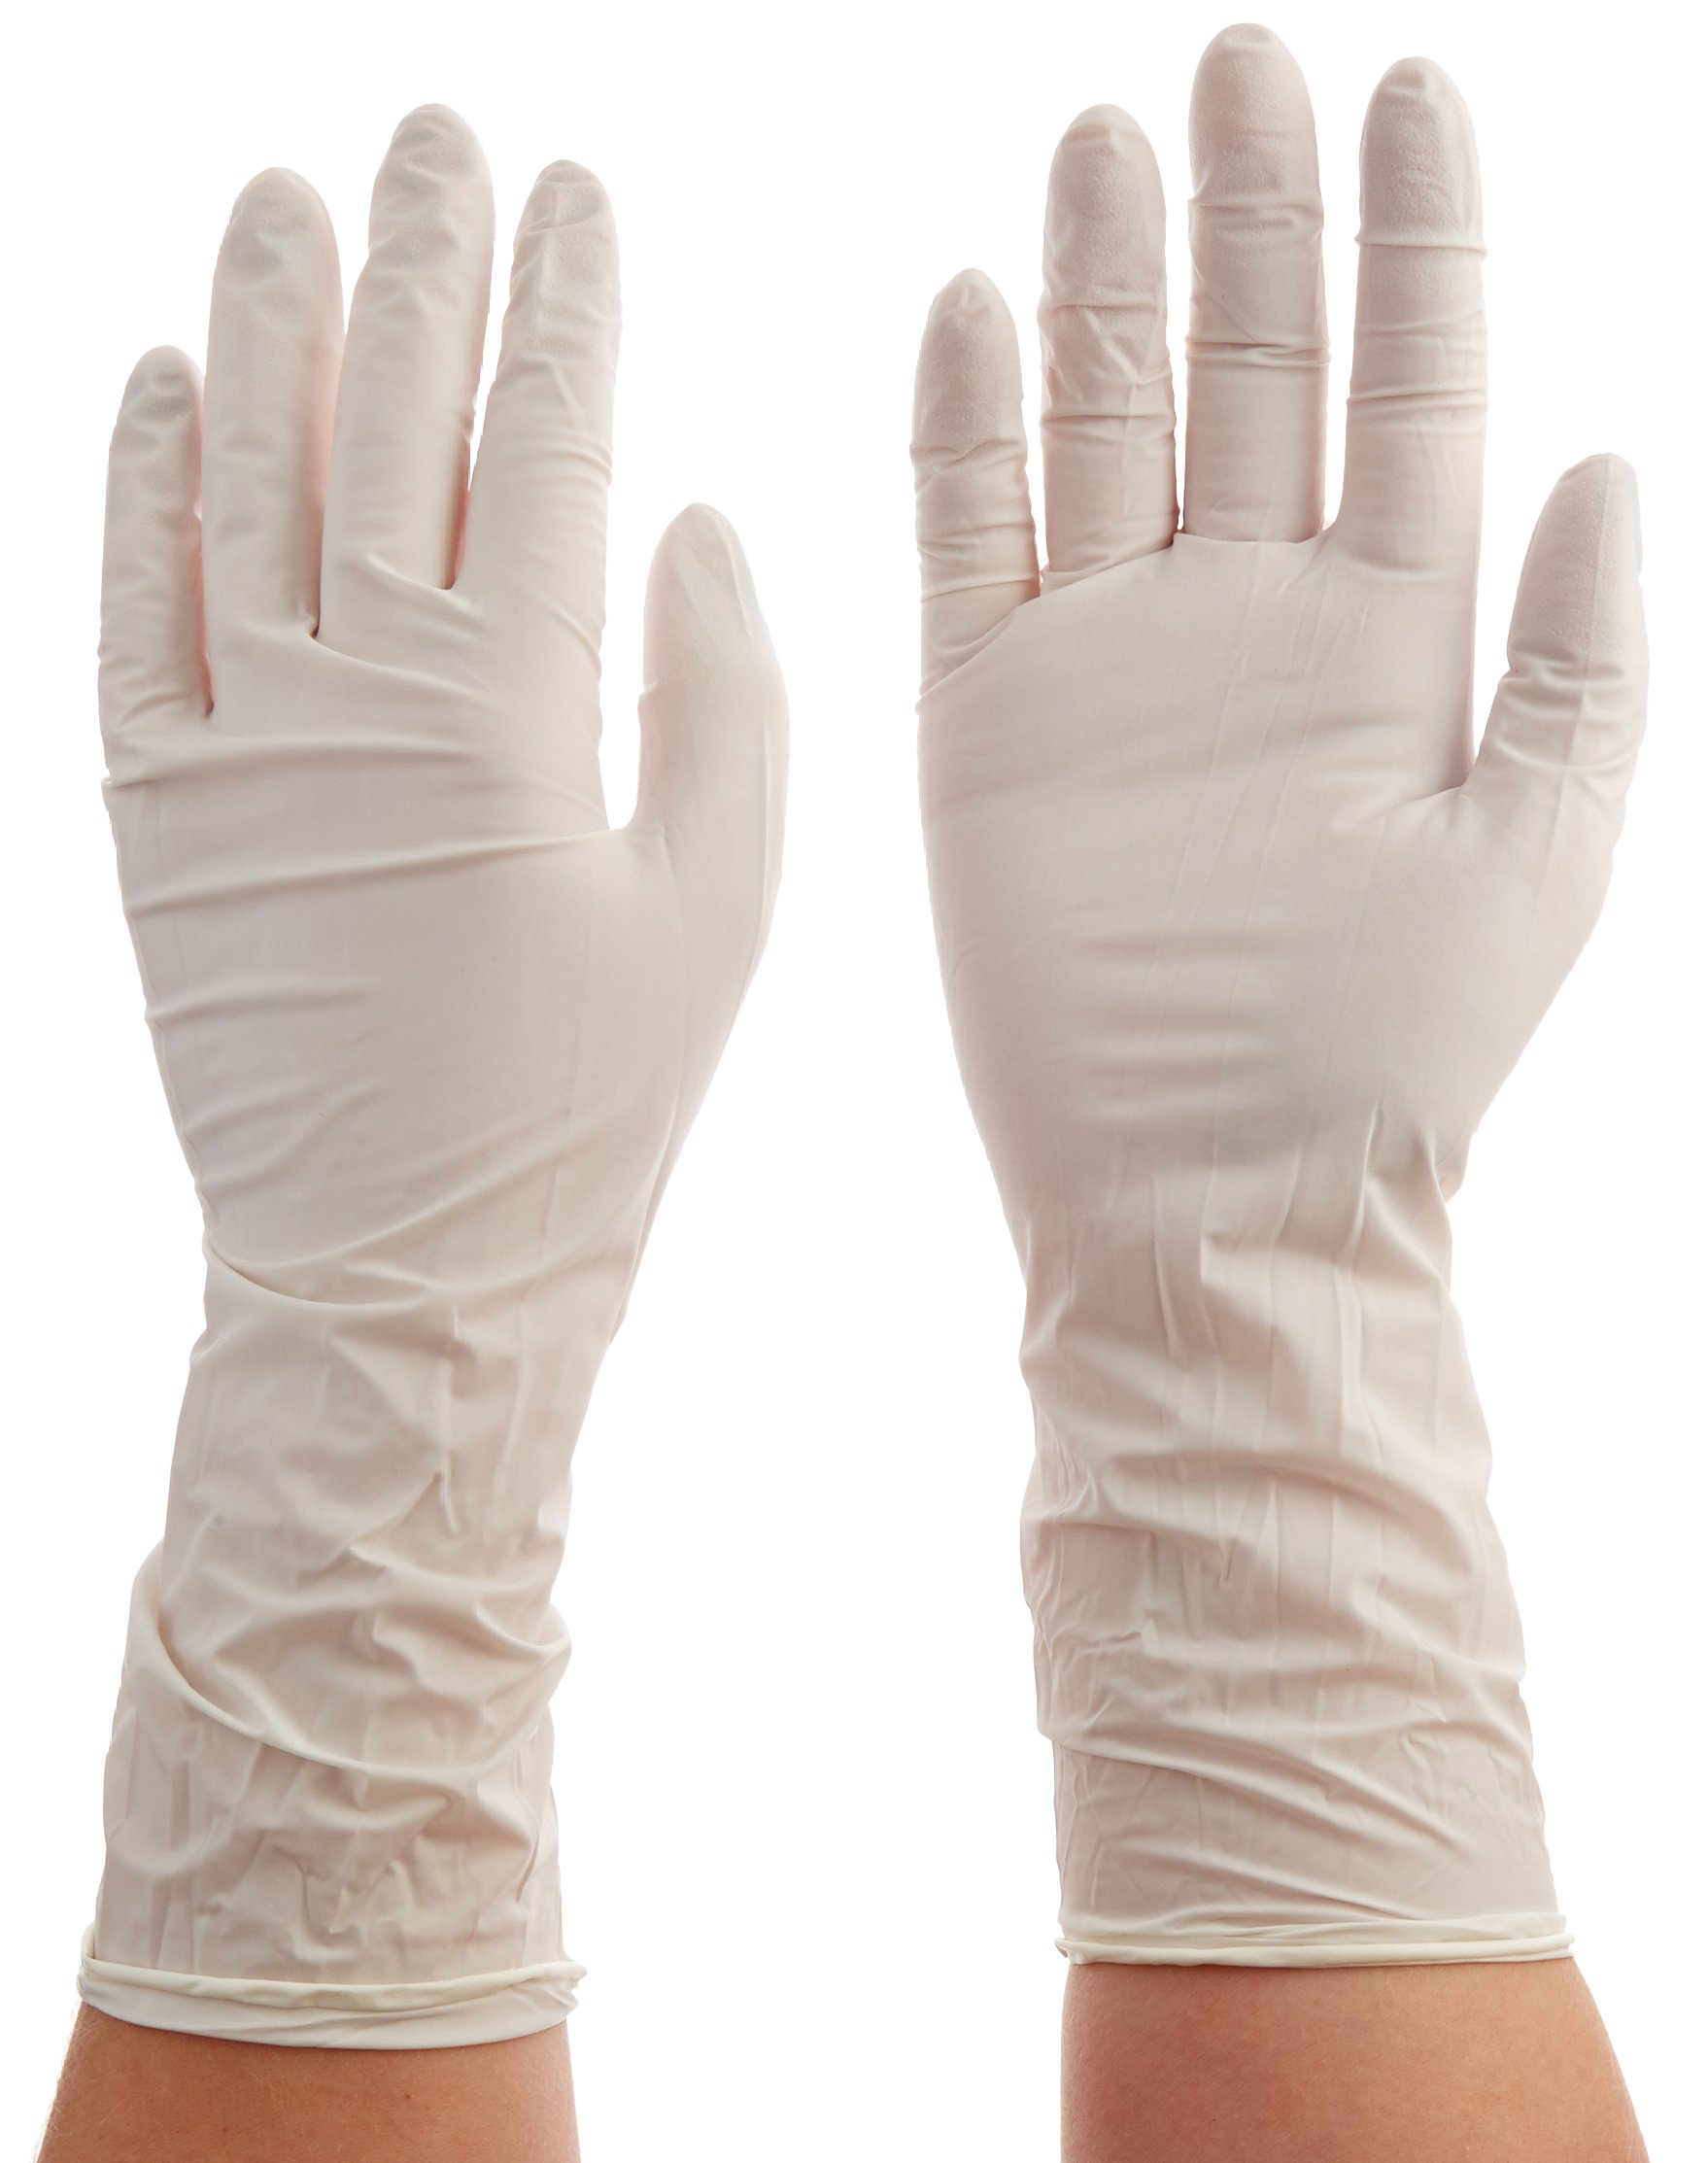 Total Source Manufacturing CRP0166_Sm Cleanroom Nitrile Gloves, Powder Free, Small, Textured, 12'' 10 Bags/Case